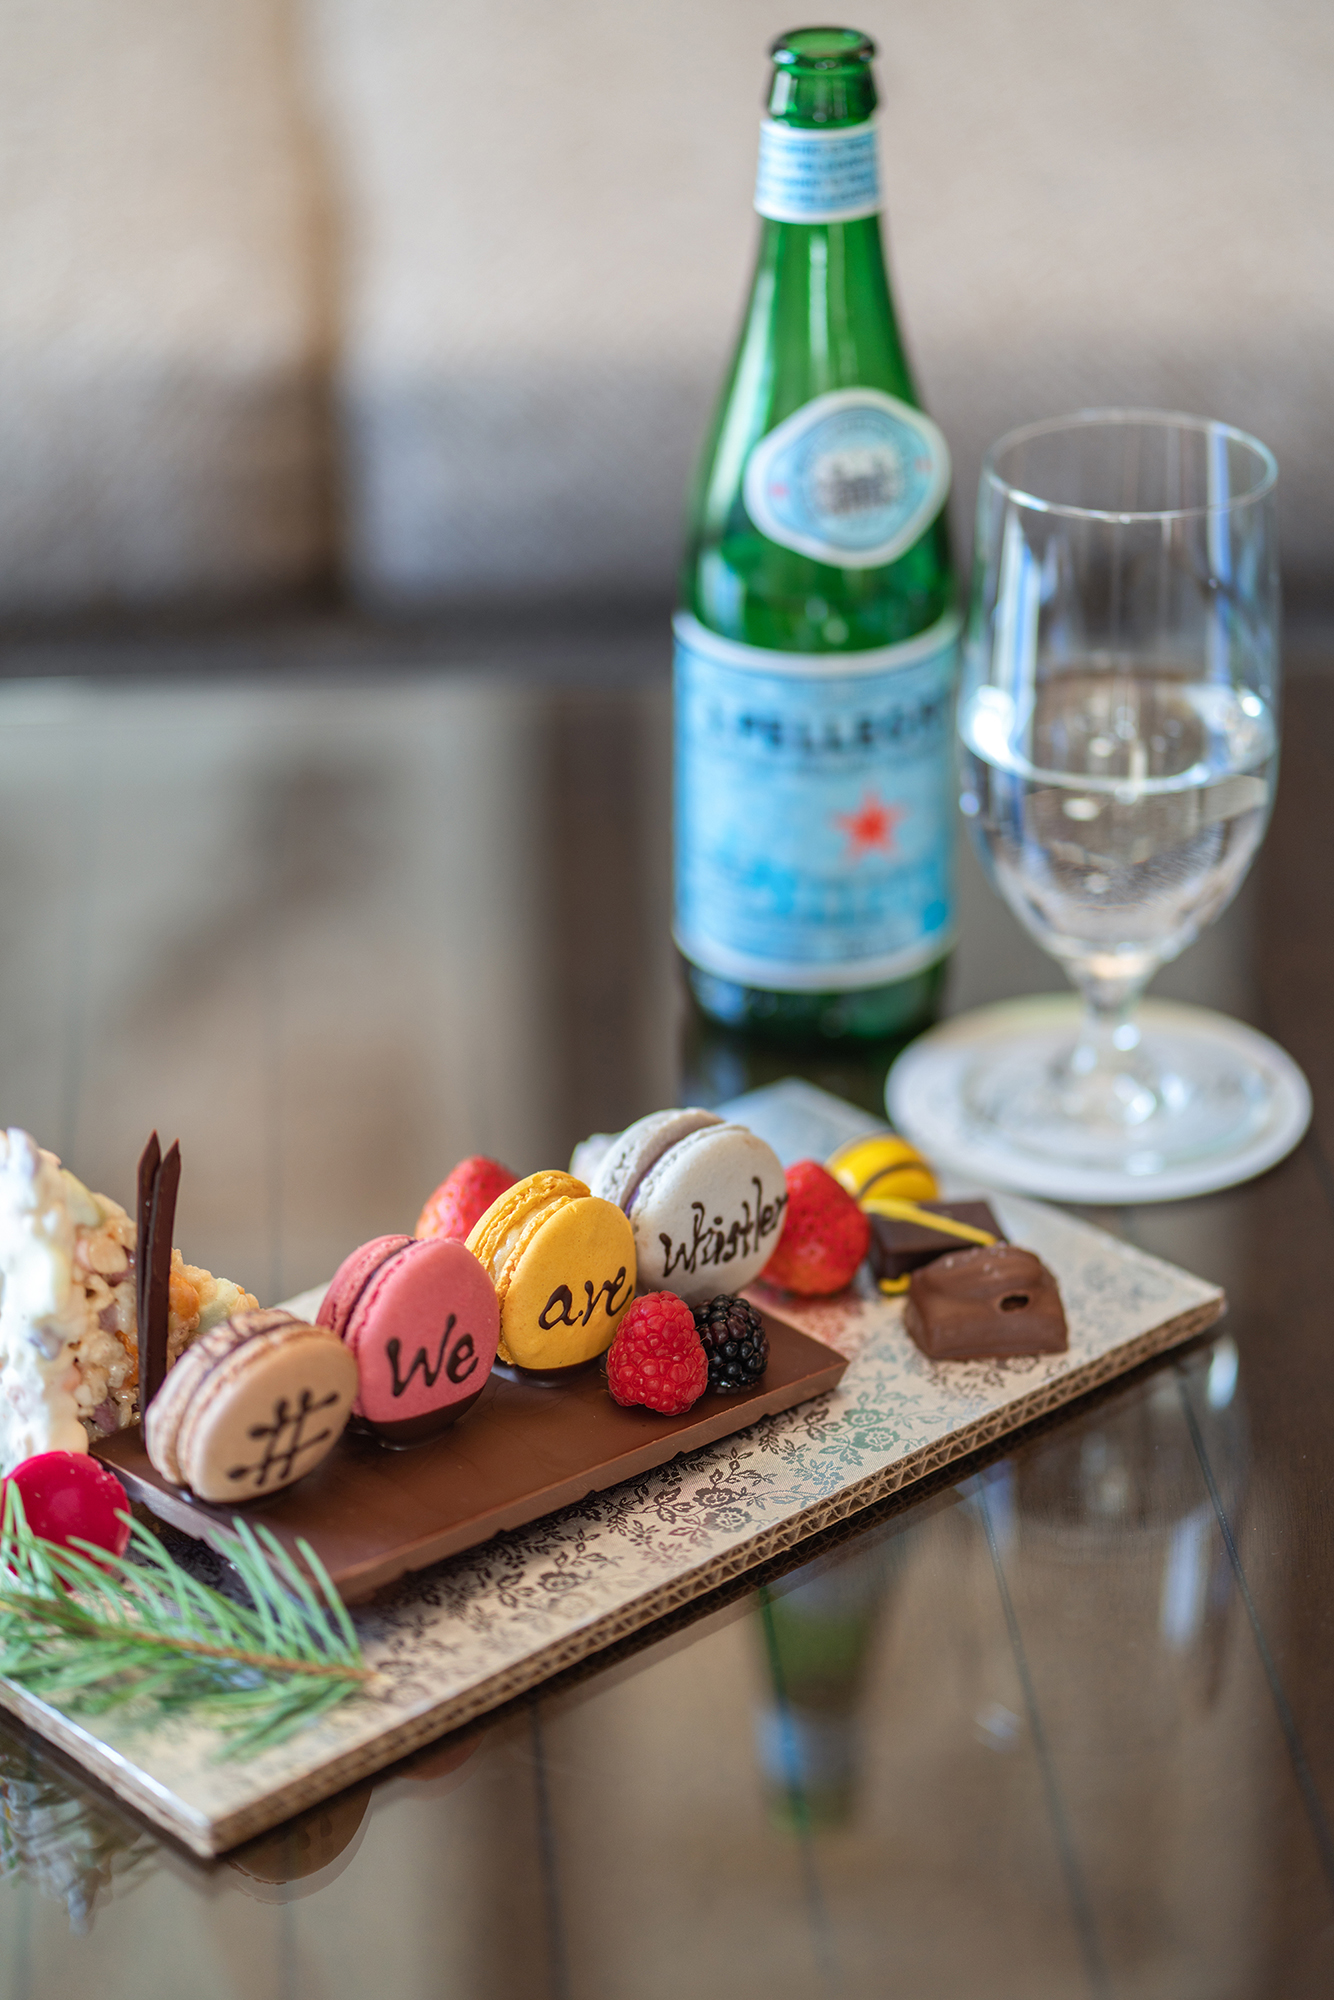 Welcome macarons at Fairmont Chateau Whistler.